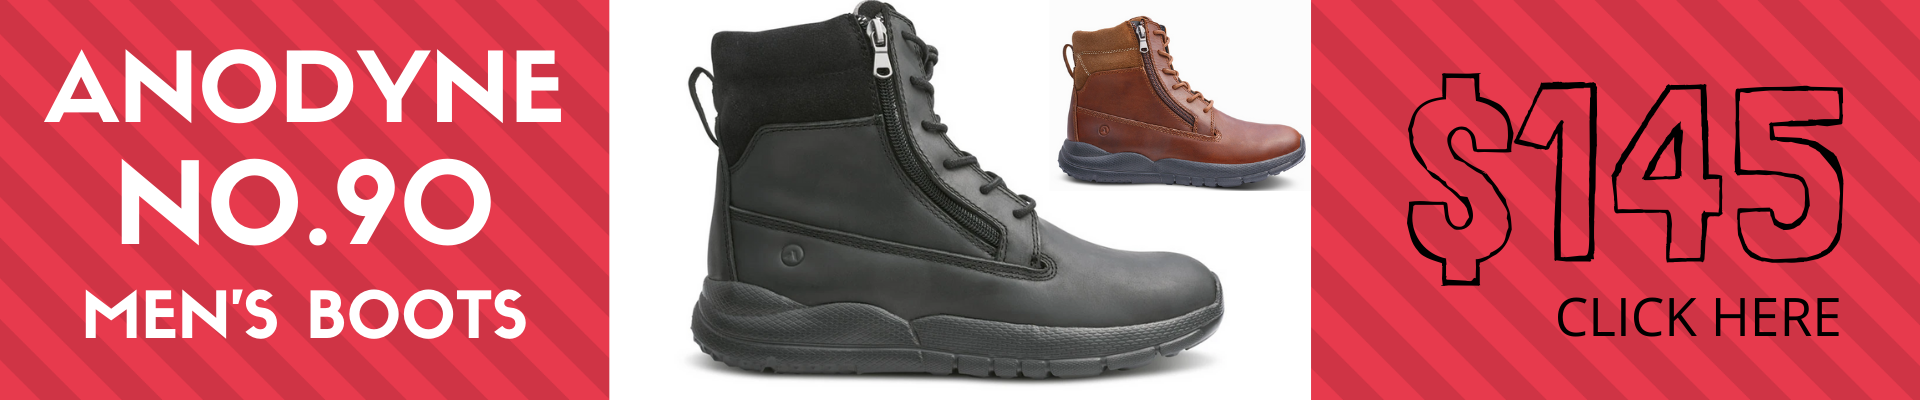 Anodyne Men's No. 90 Diabetic Therapeutic Work Boot